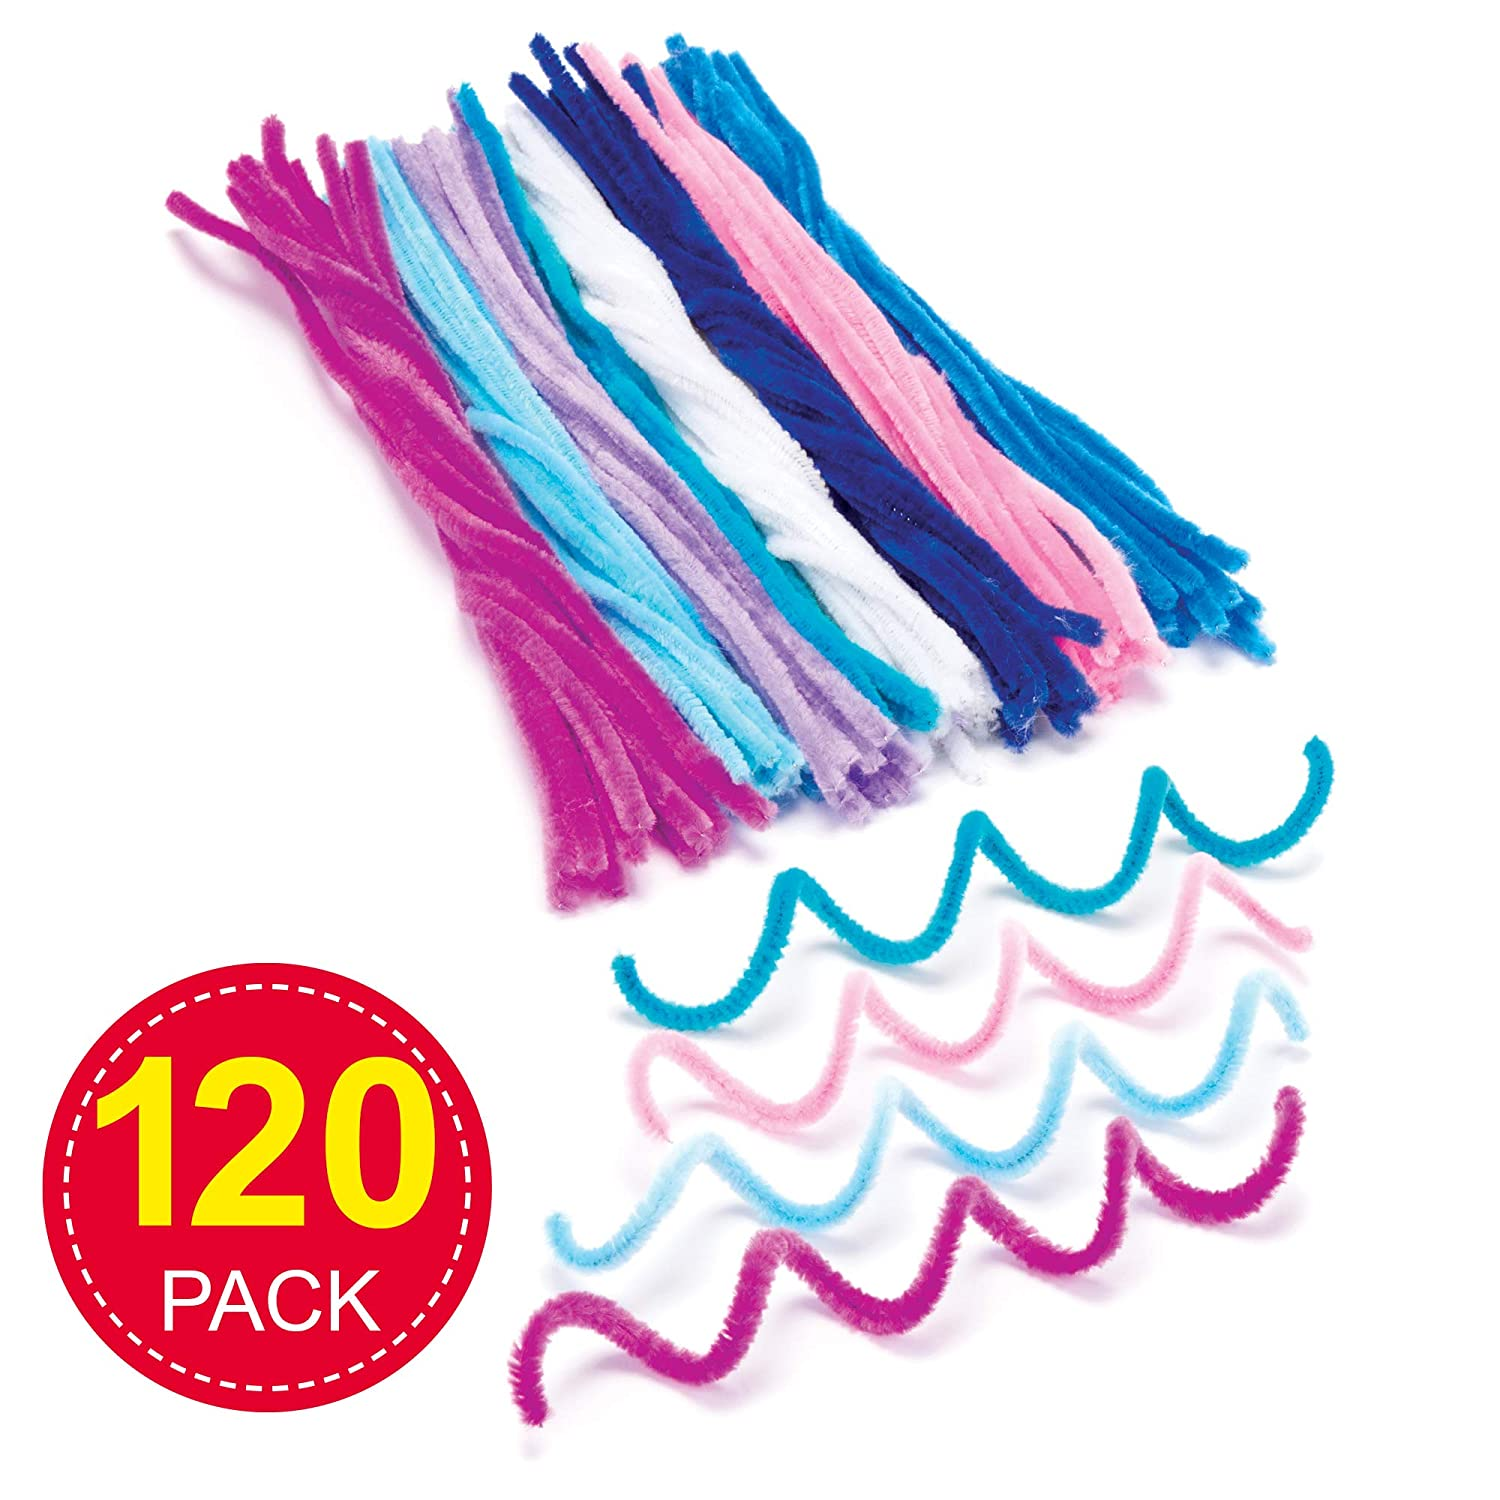 Craft Embellishments Pack of 120 Baker Ross AX696 Pipe Cleaners Ideal for Winter Arts and Crafts Projects for Kids